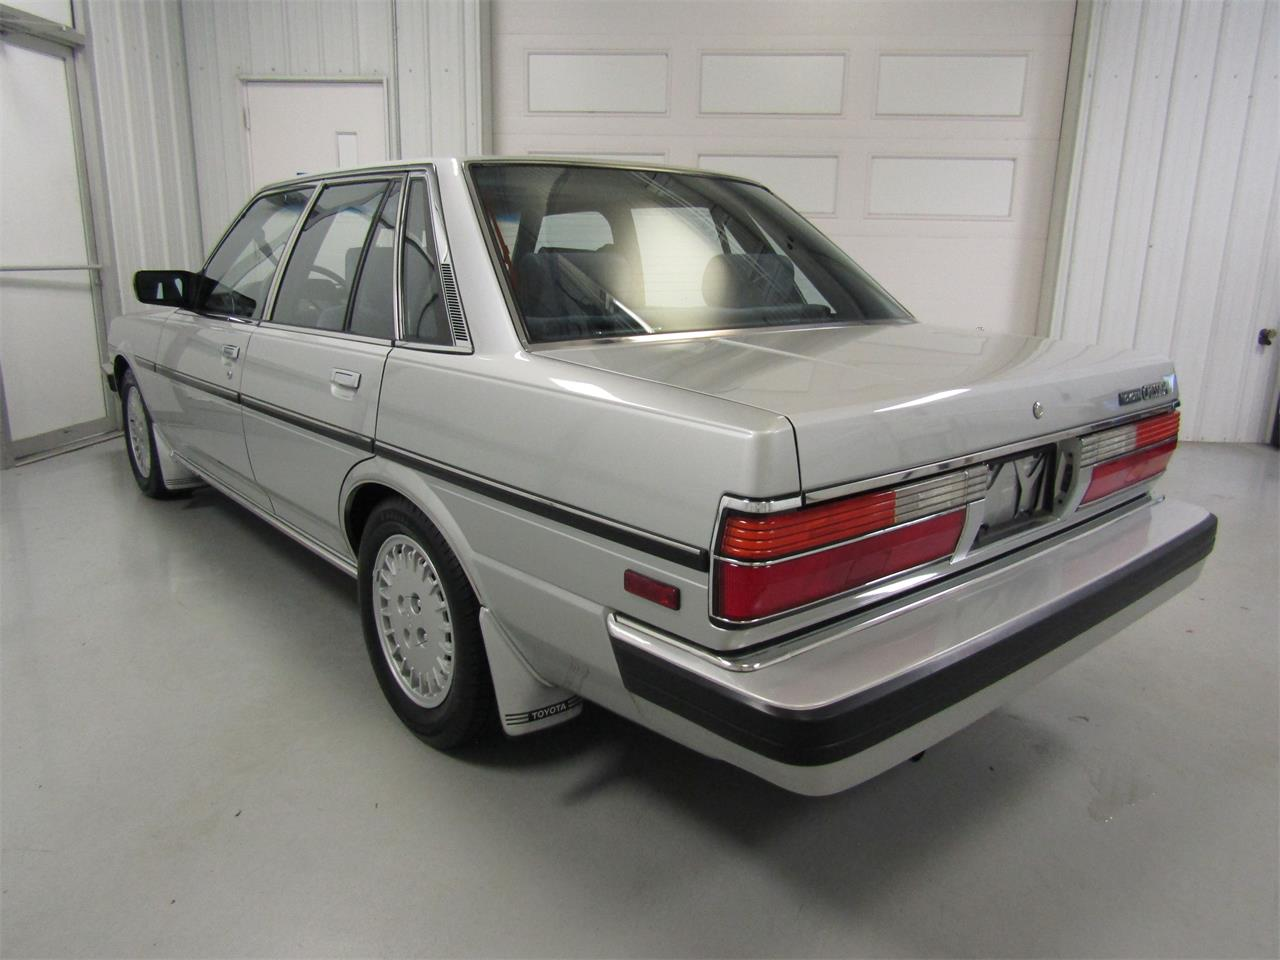 1985 Toyota Cressida for sale in Christiansburg, VA – photo 7